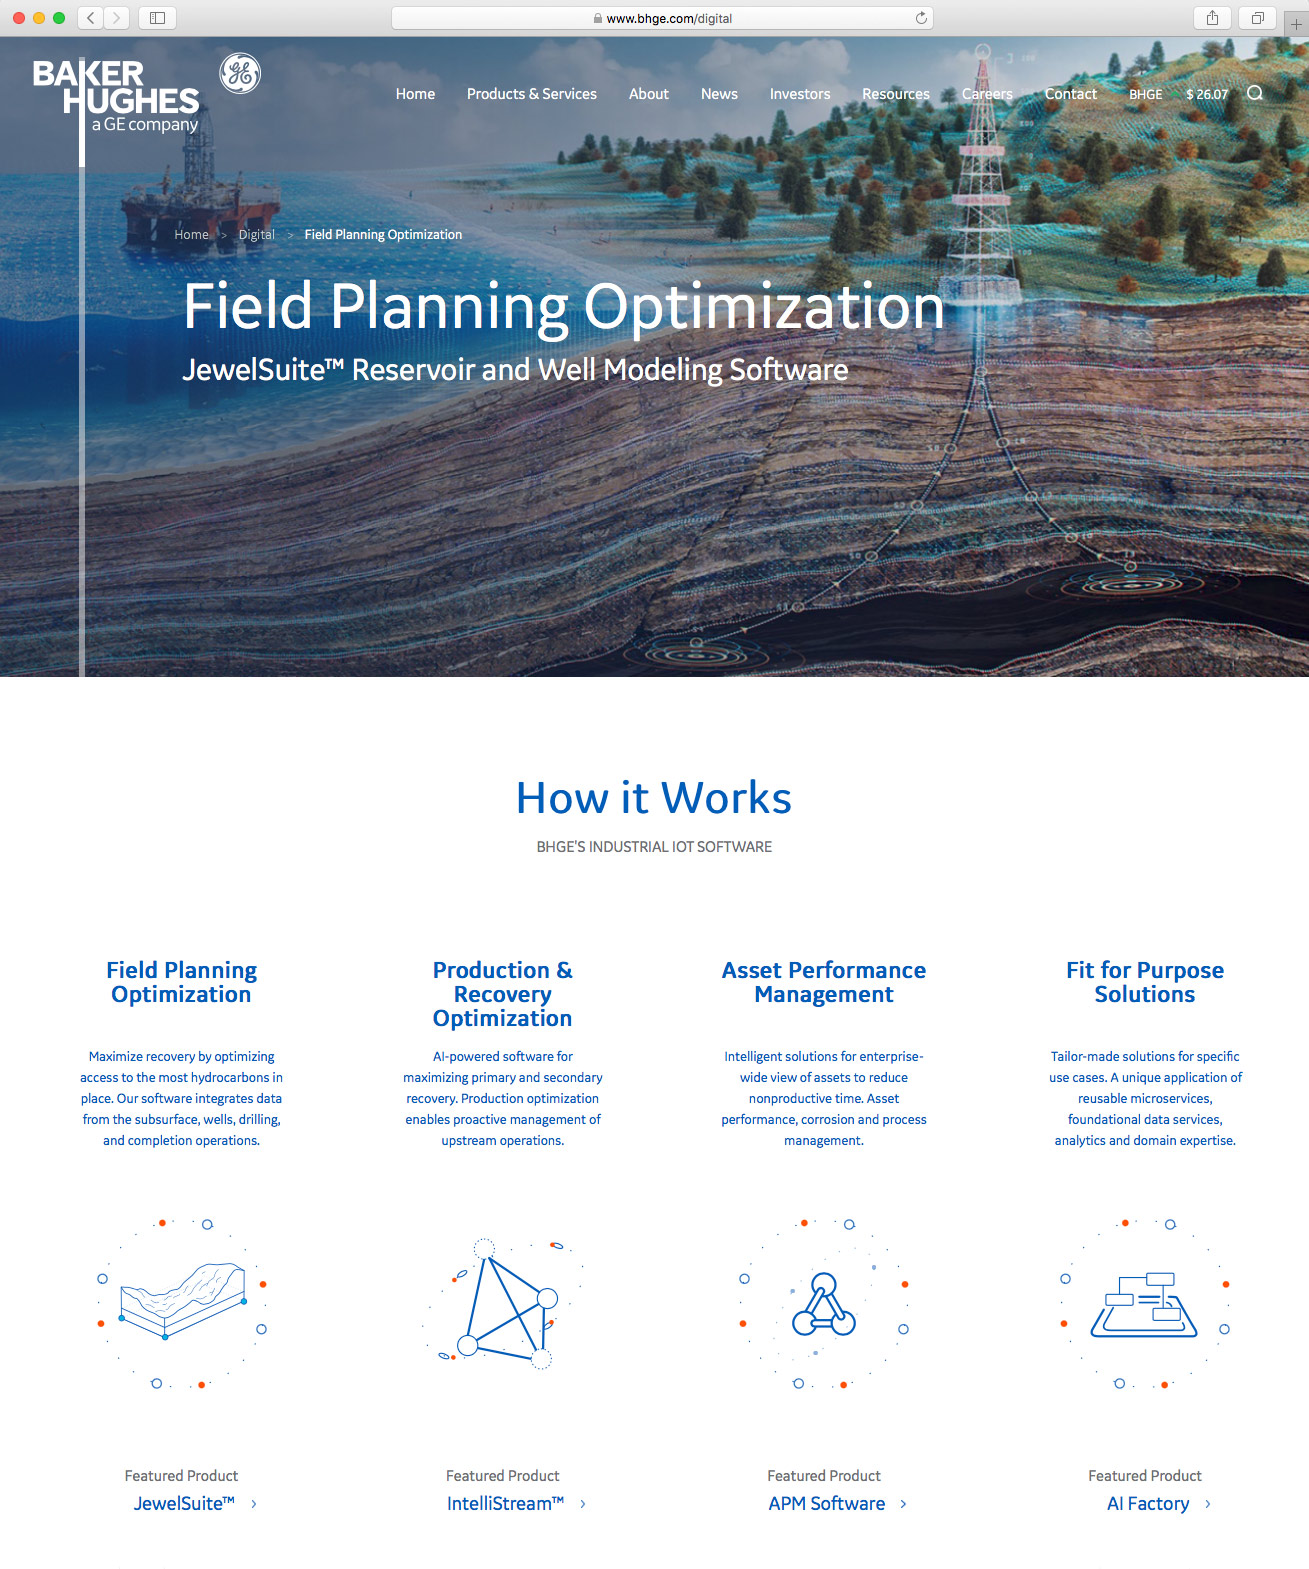 Field Planning Optimization